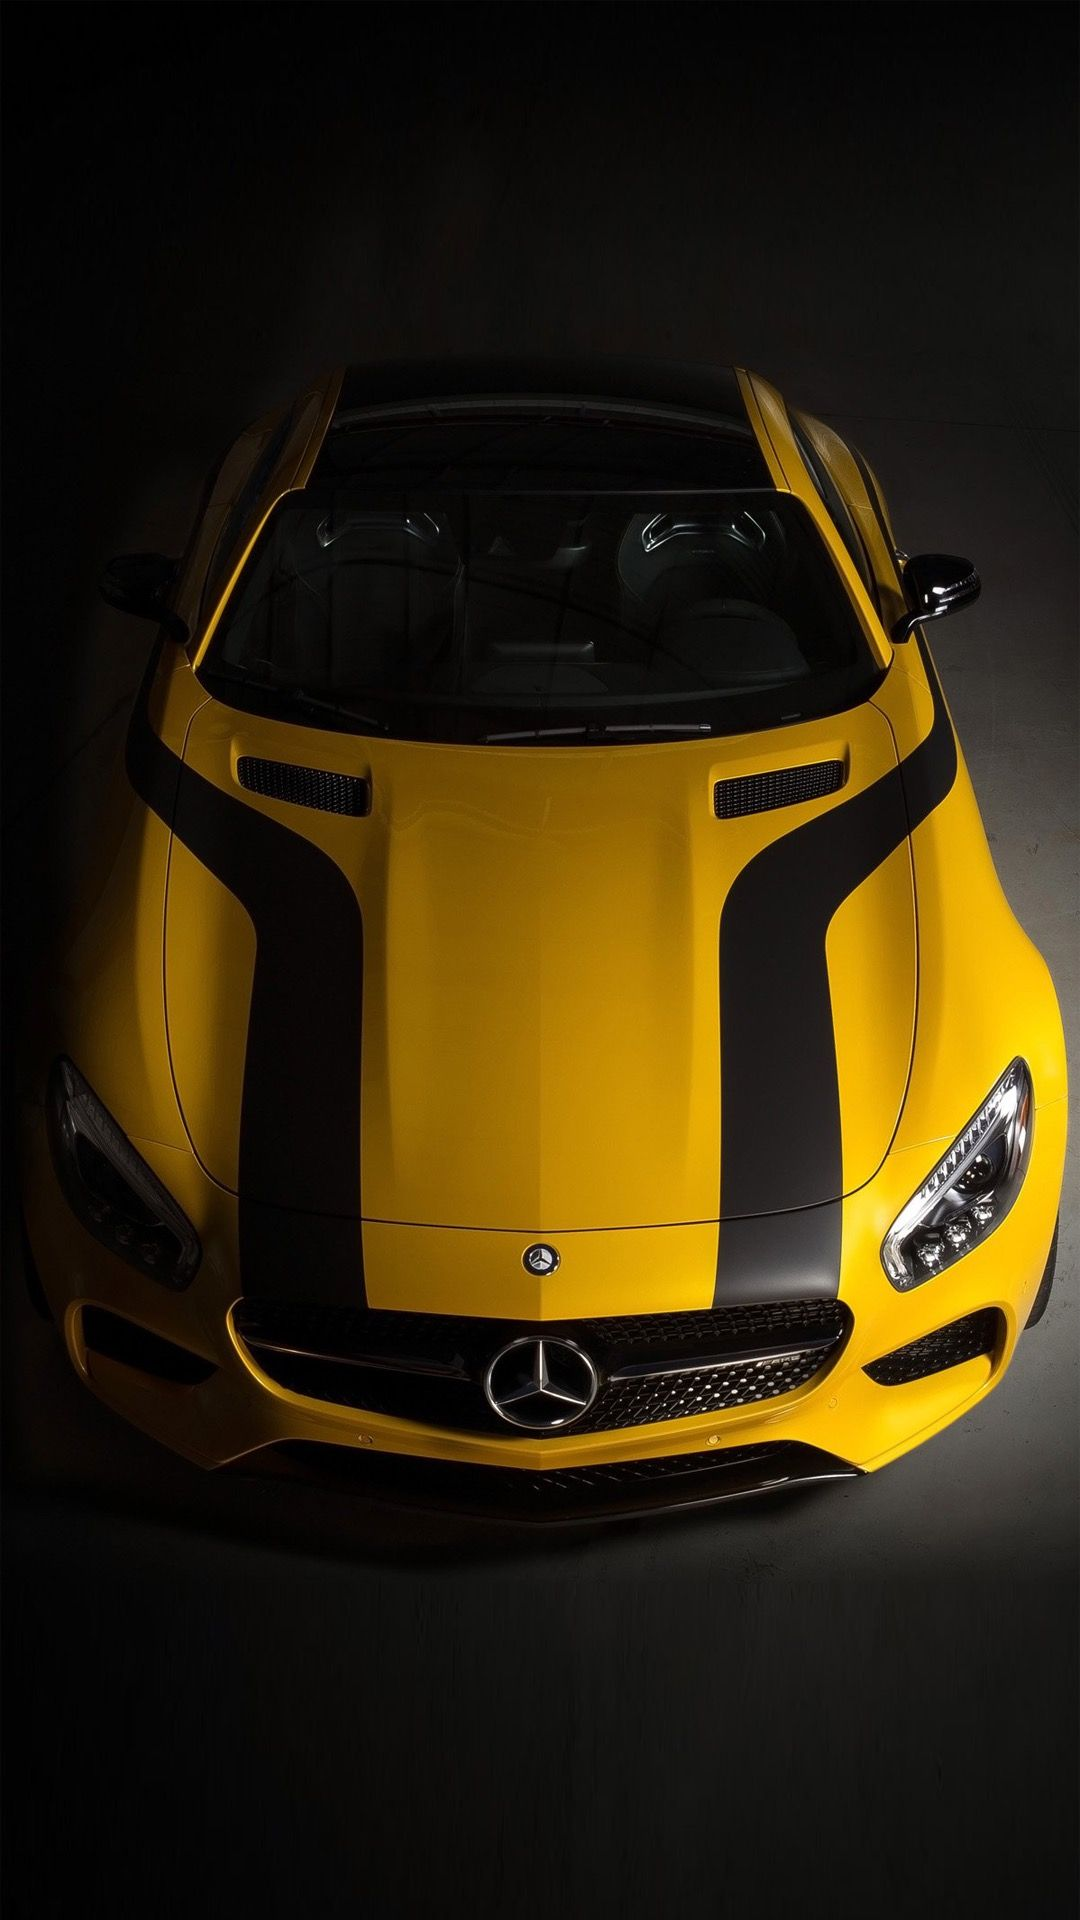 Pin By Filip Grbovic On Mercedes 2 Mercedes Amg Mercedes Amg Gt S Mercedes Benz Amg 2016 mercedes benz amg gt s 2